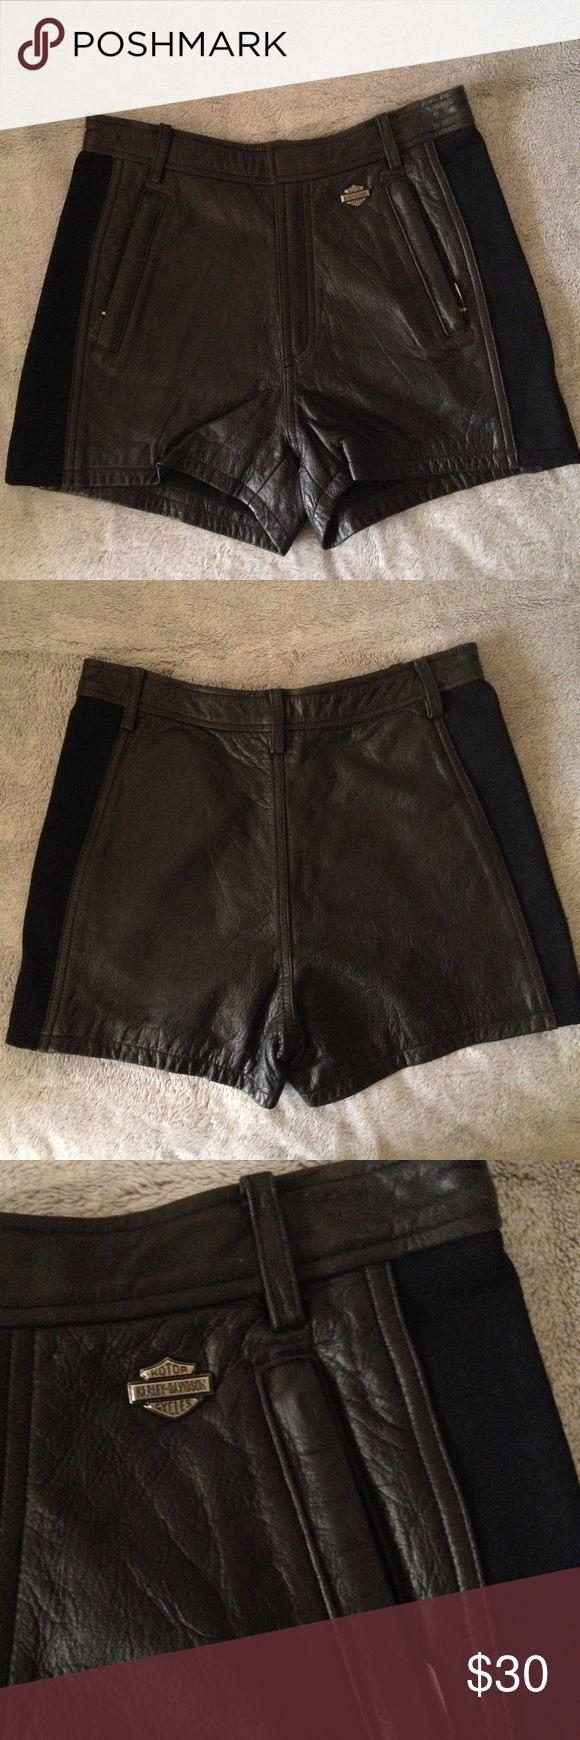 Harley Davidson Shorts High waisted leather shorts with stretchy material on the side. They'll look super cute when you're on that motorcycle 😎 Harley-Davidson Shorts